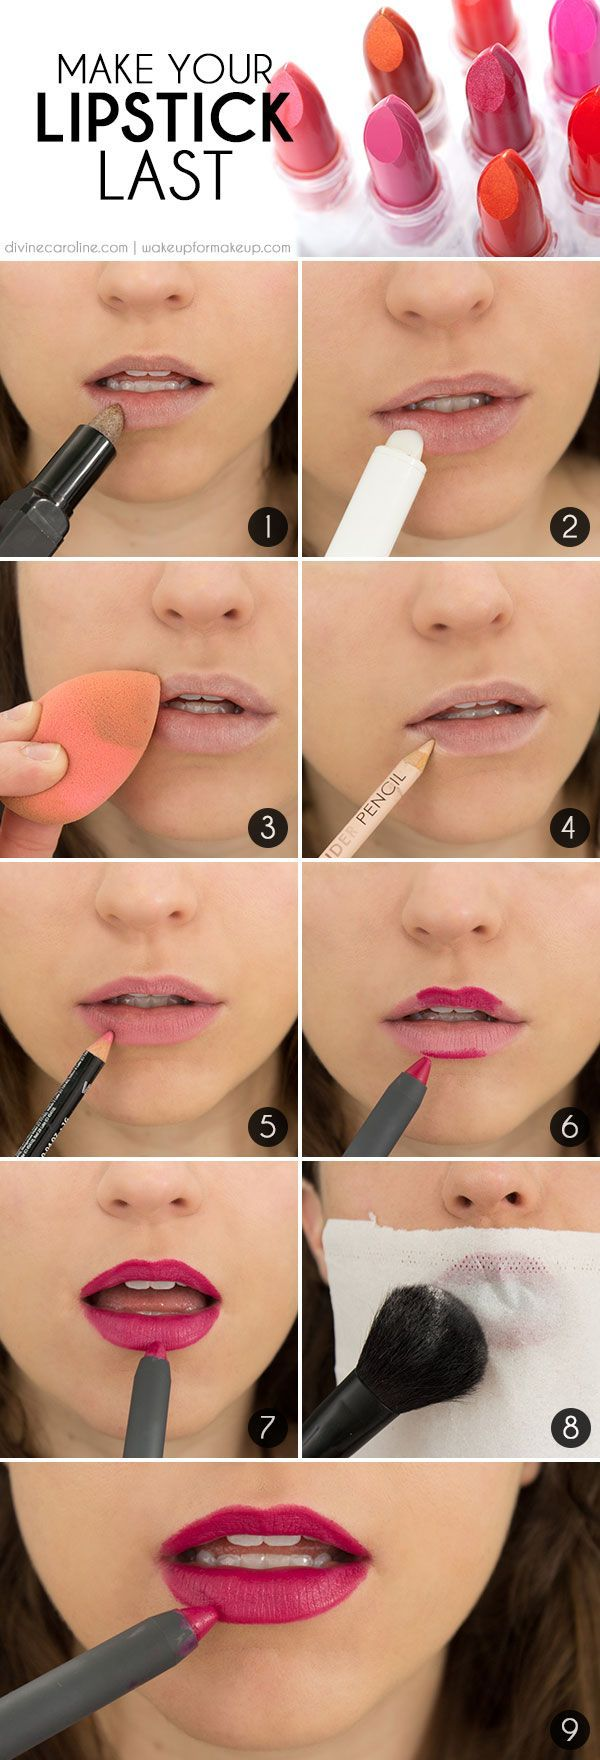 How to make lipstick stay put.